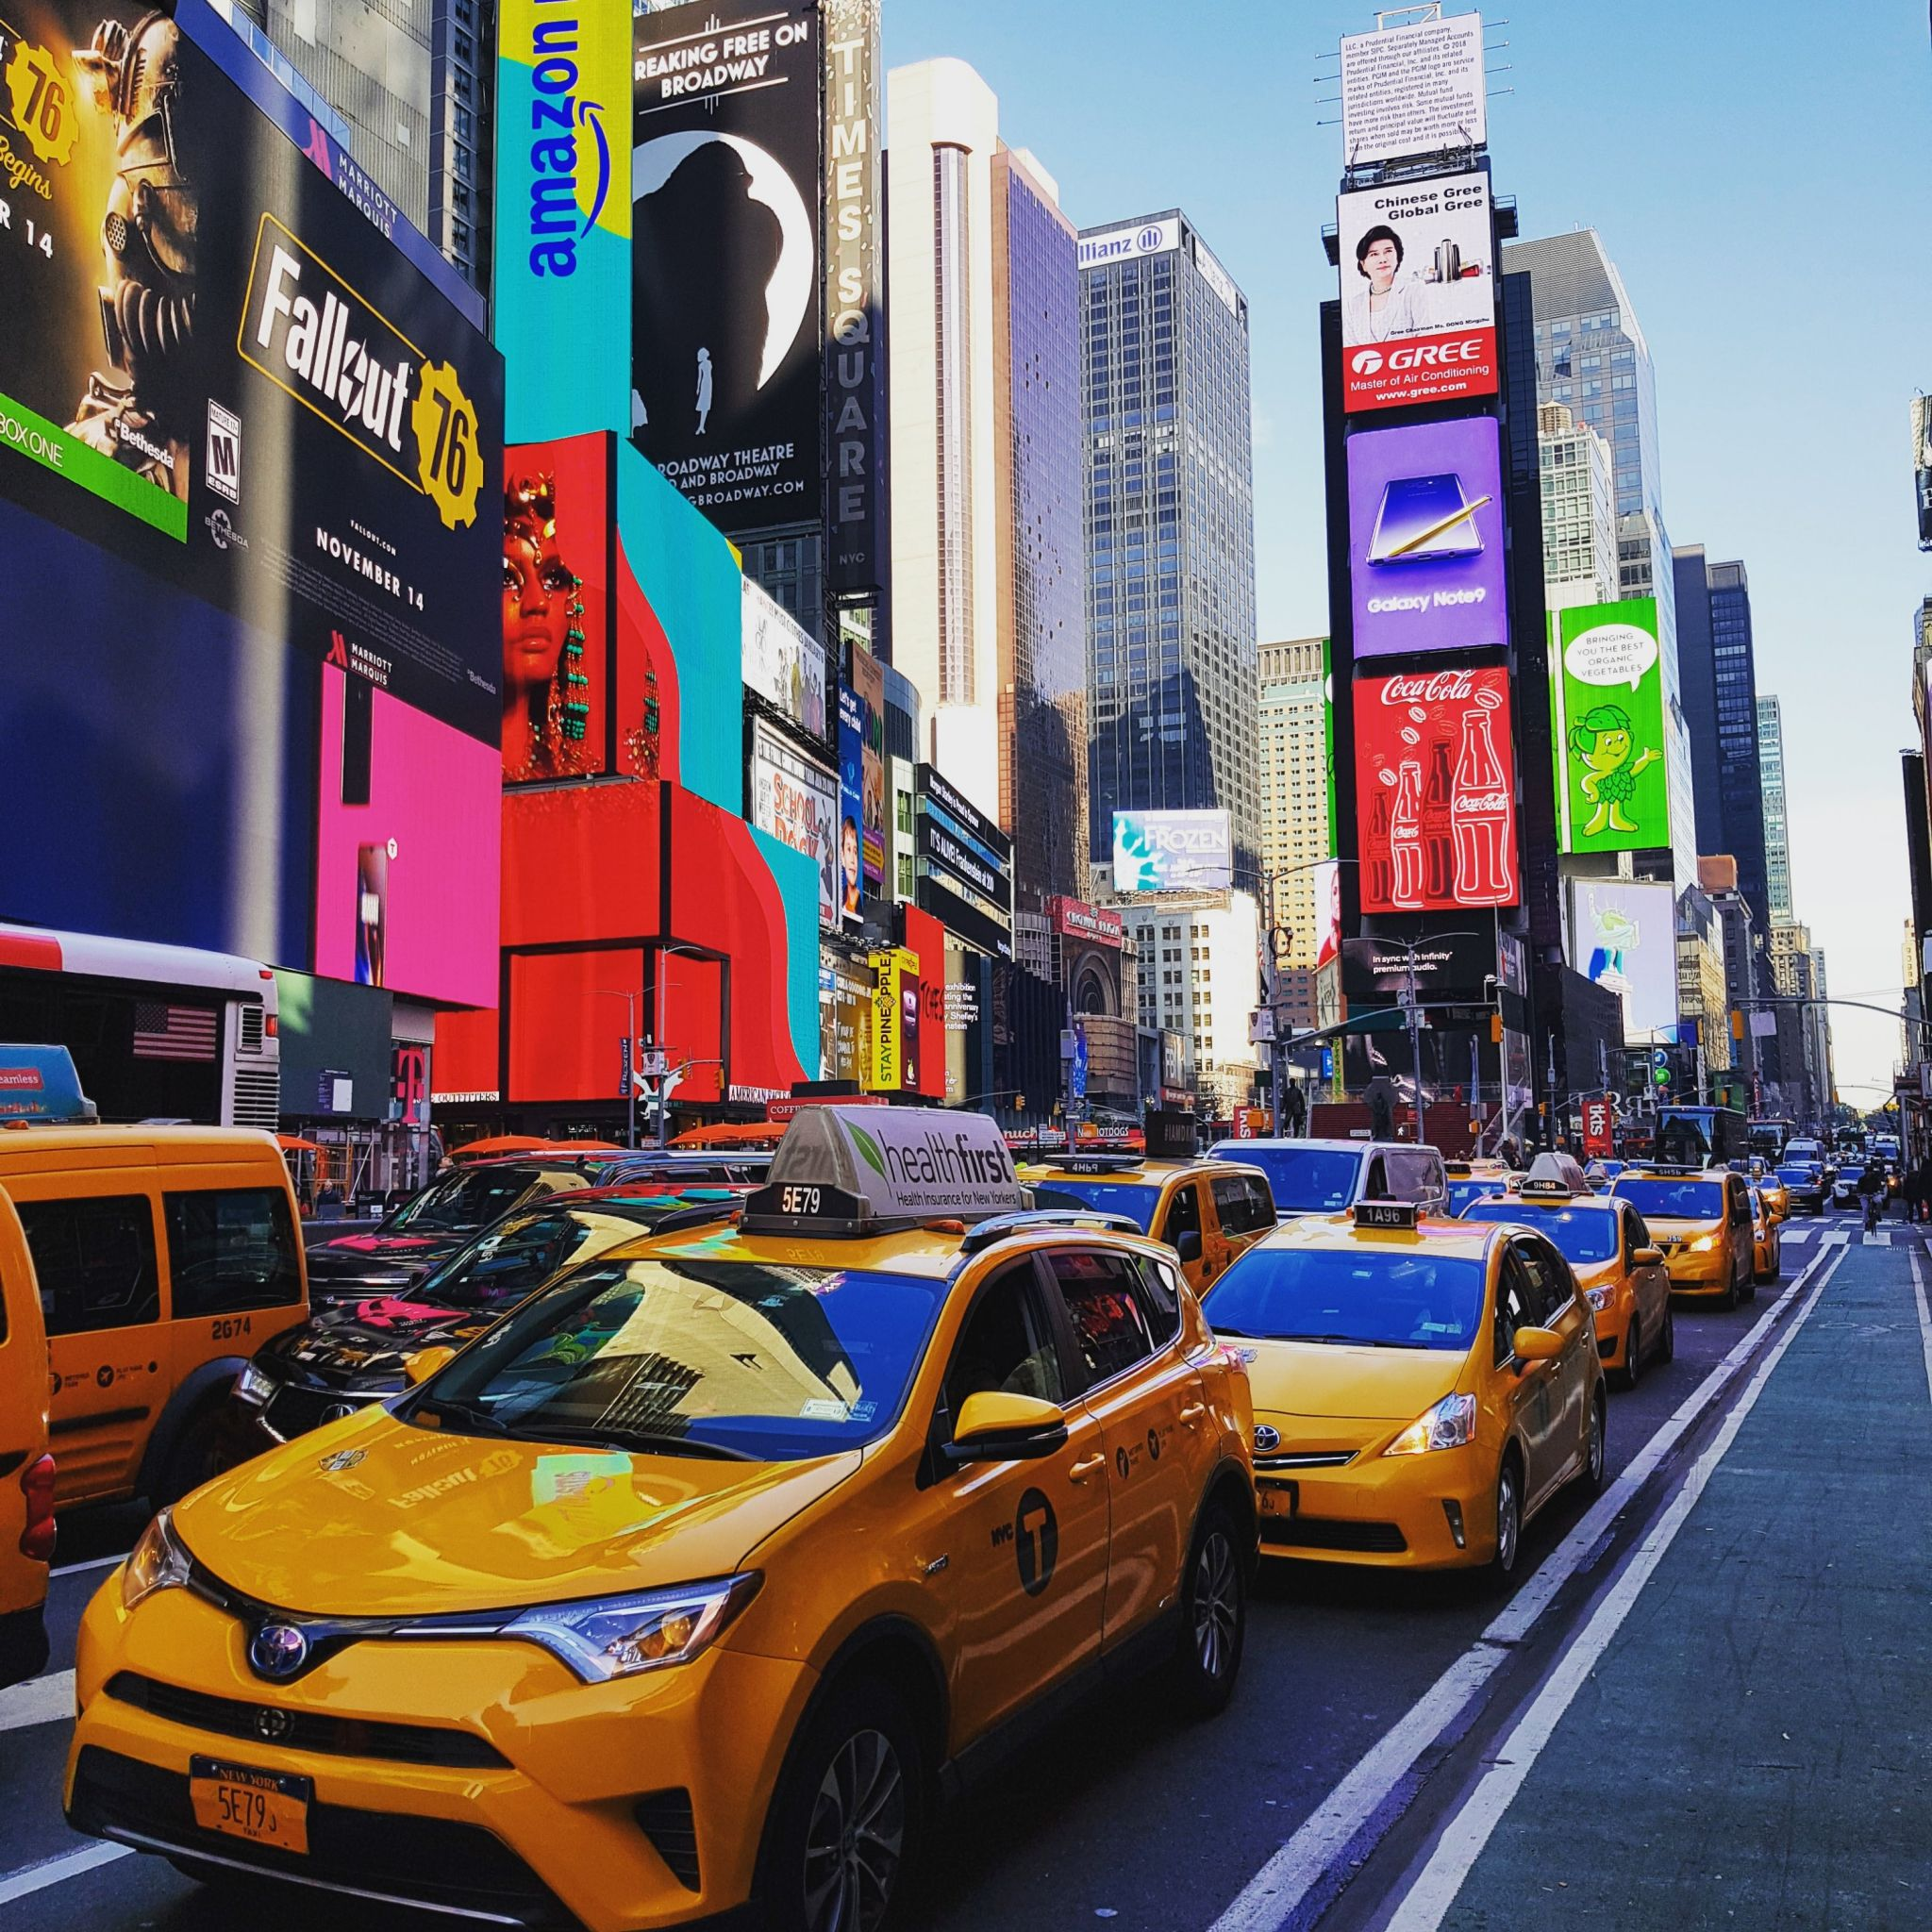 Times Square, New York, MANHATTAN, YELLOW CABS